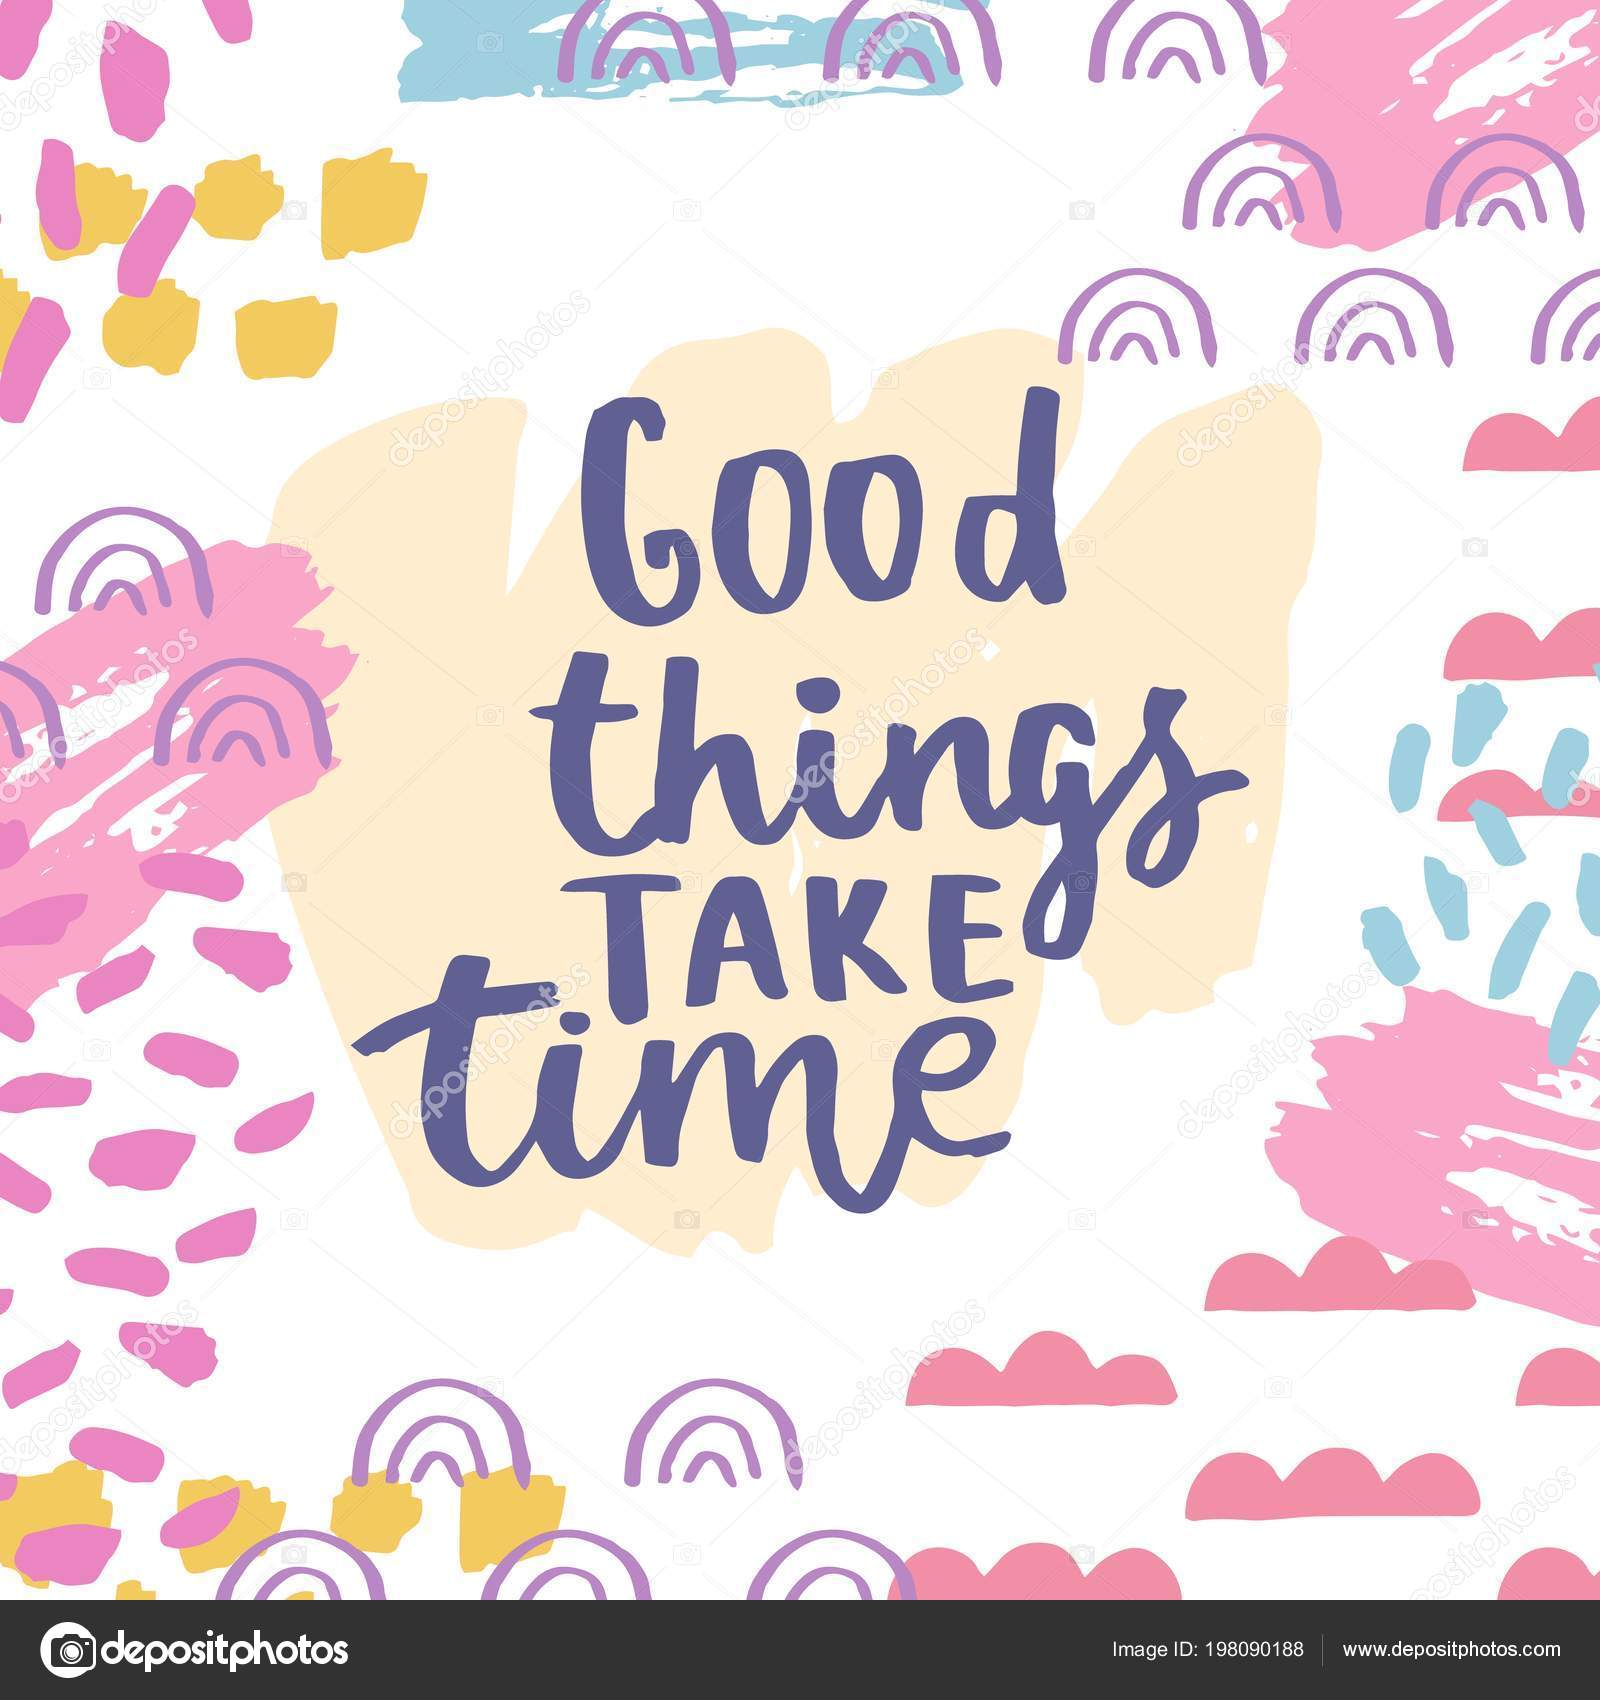 Good Things Take Time Motivational Saying Inspirational Quote Slogan